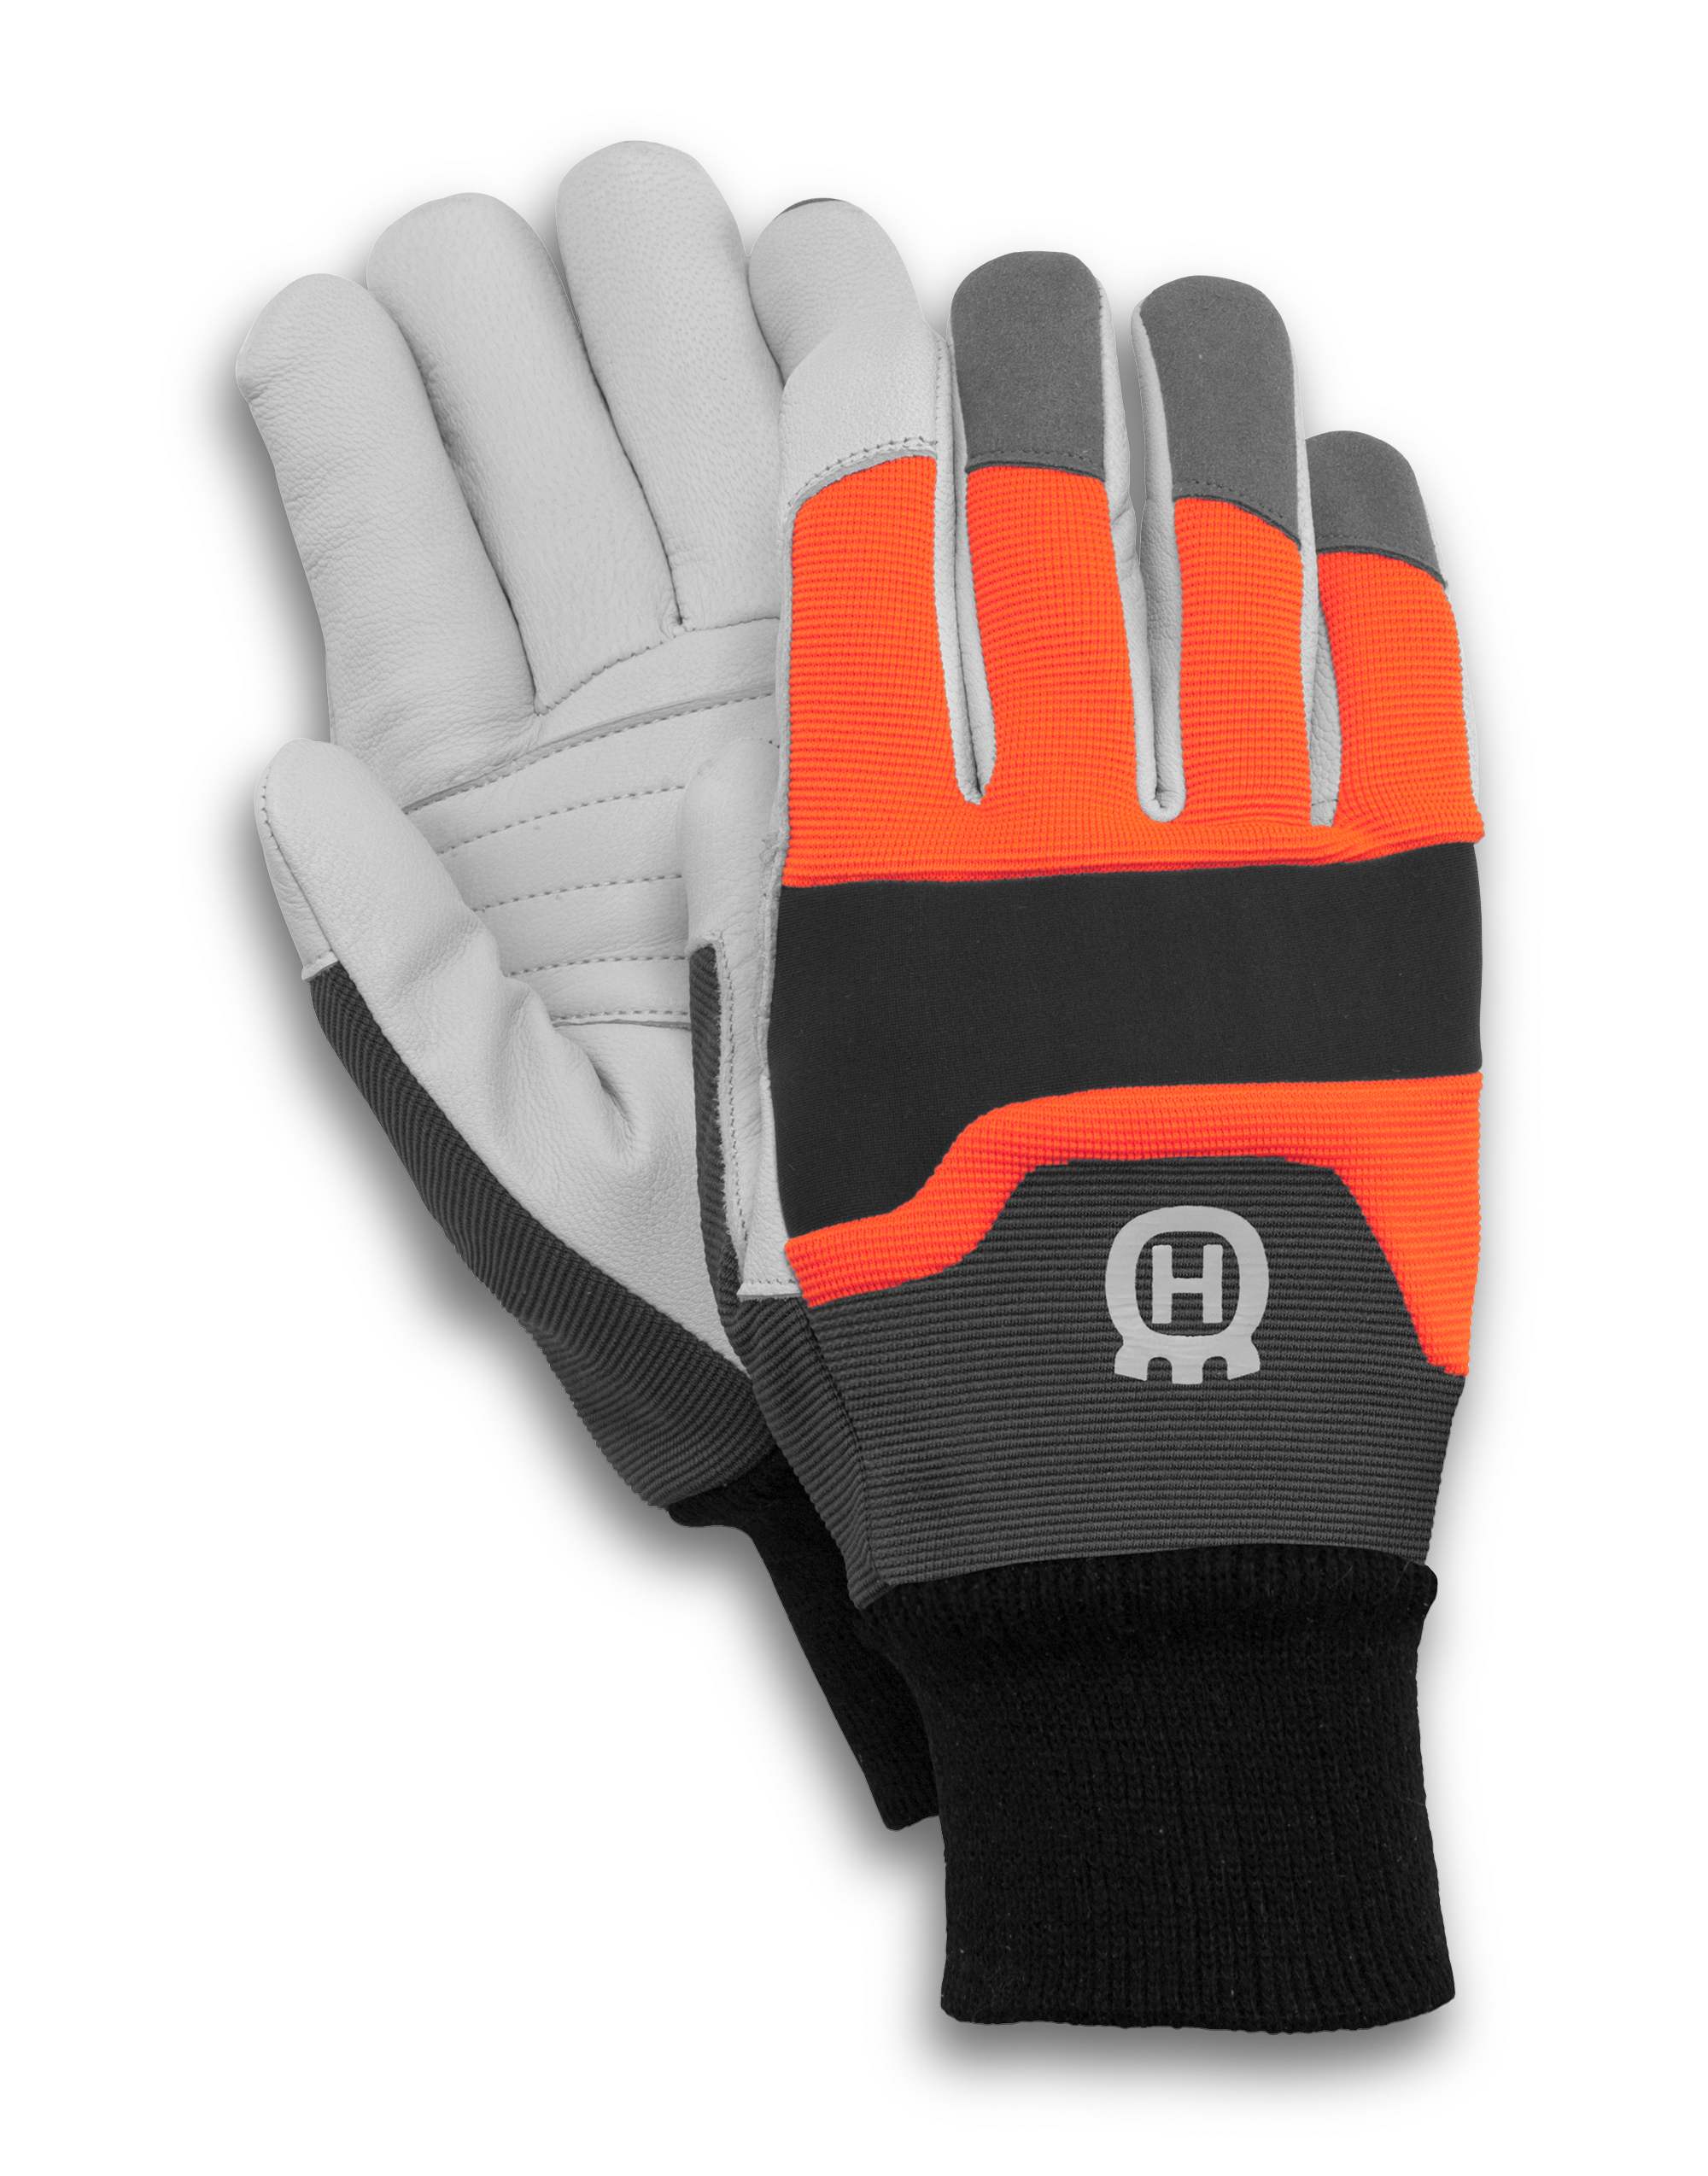 svg library Husqvarna gloves functional with. Glove clipart article clothing